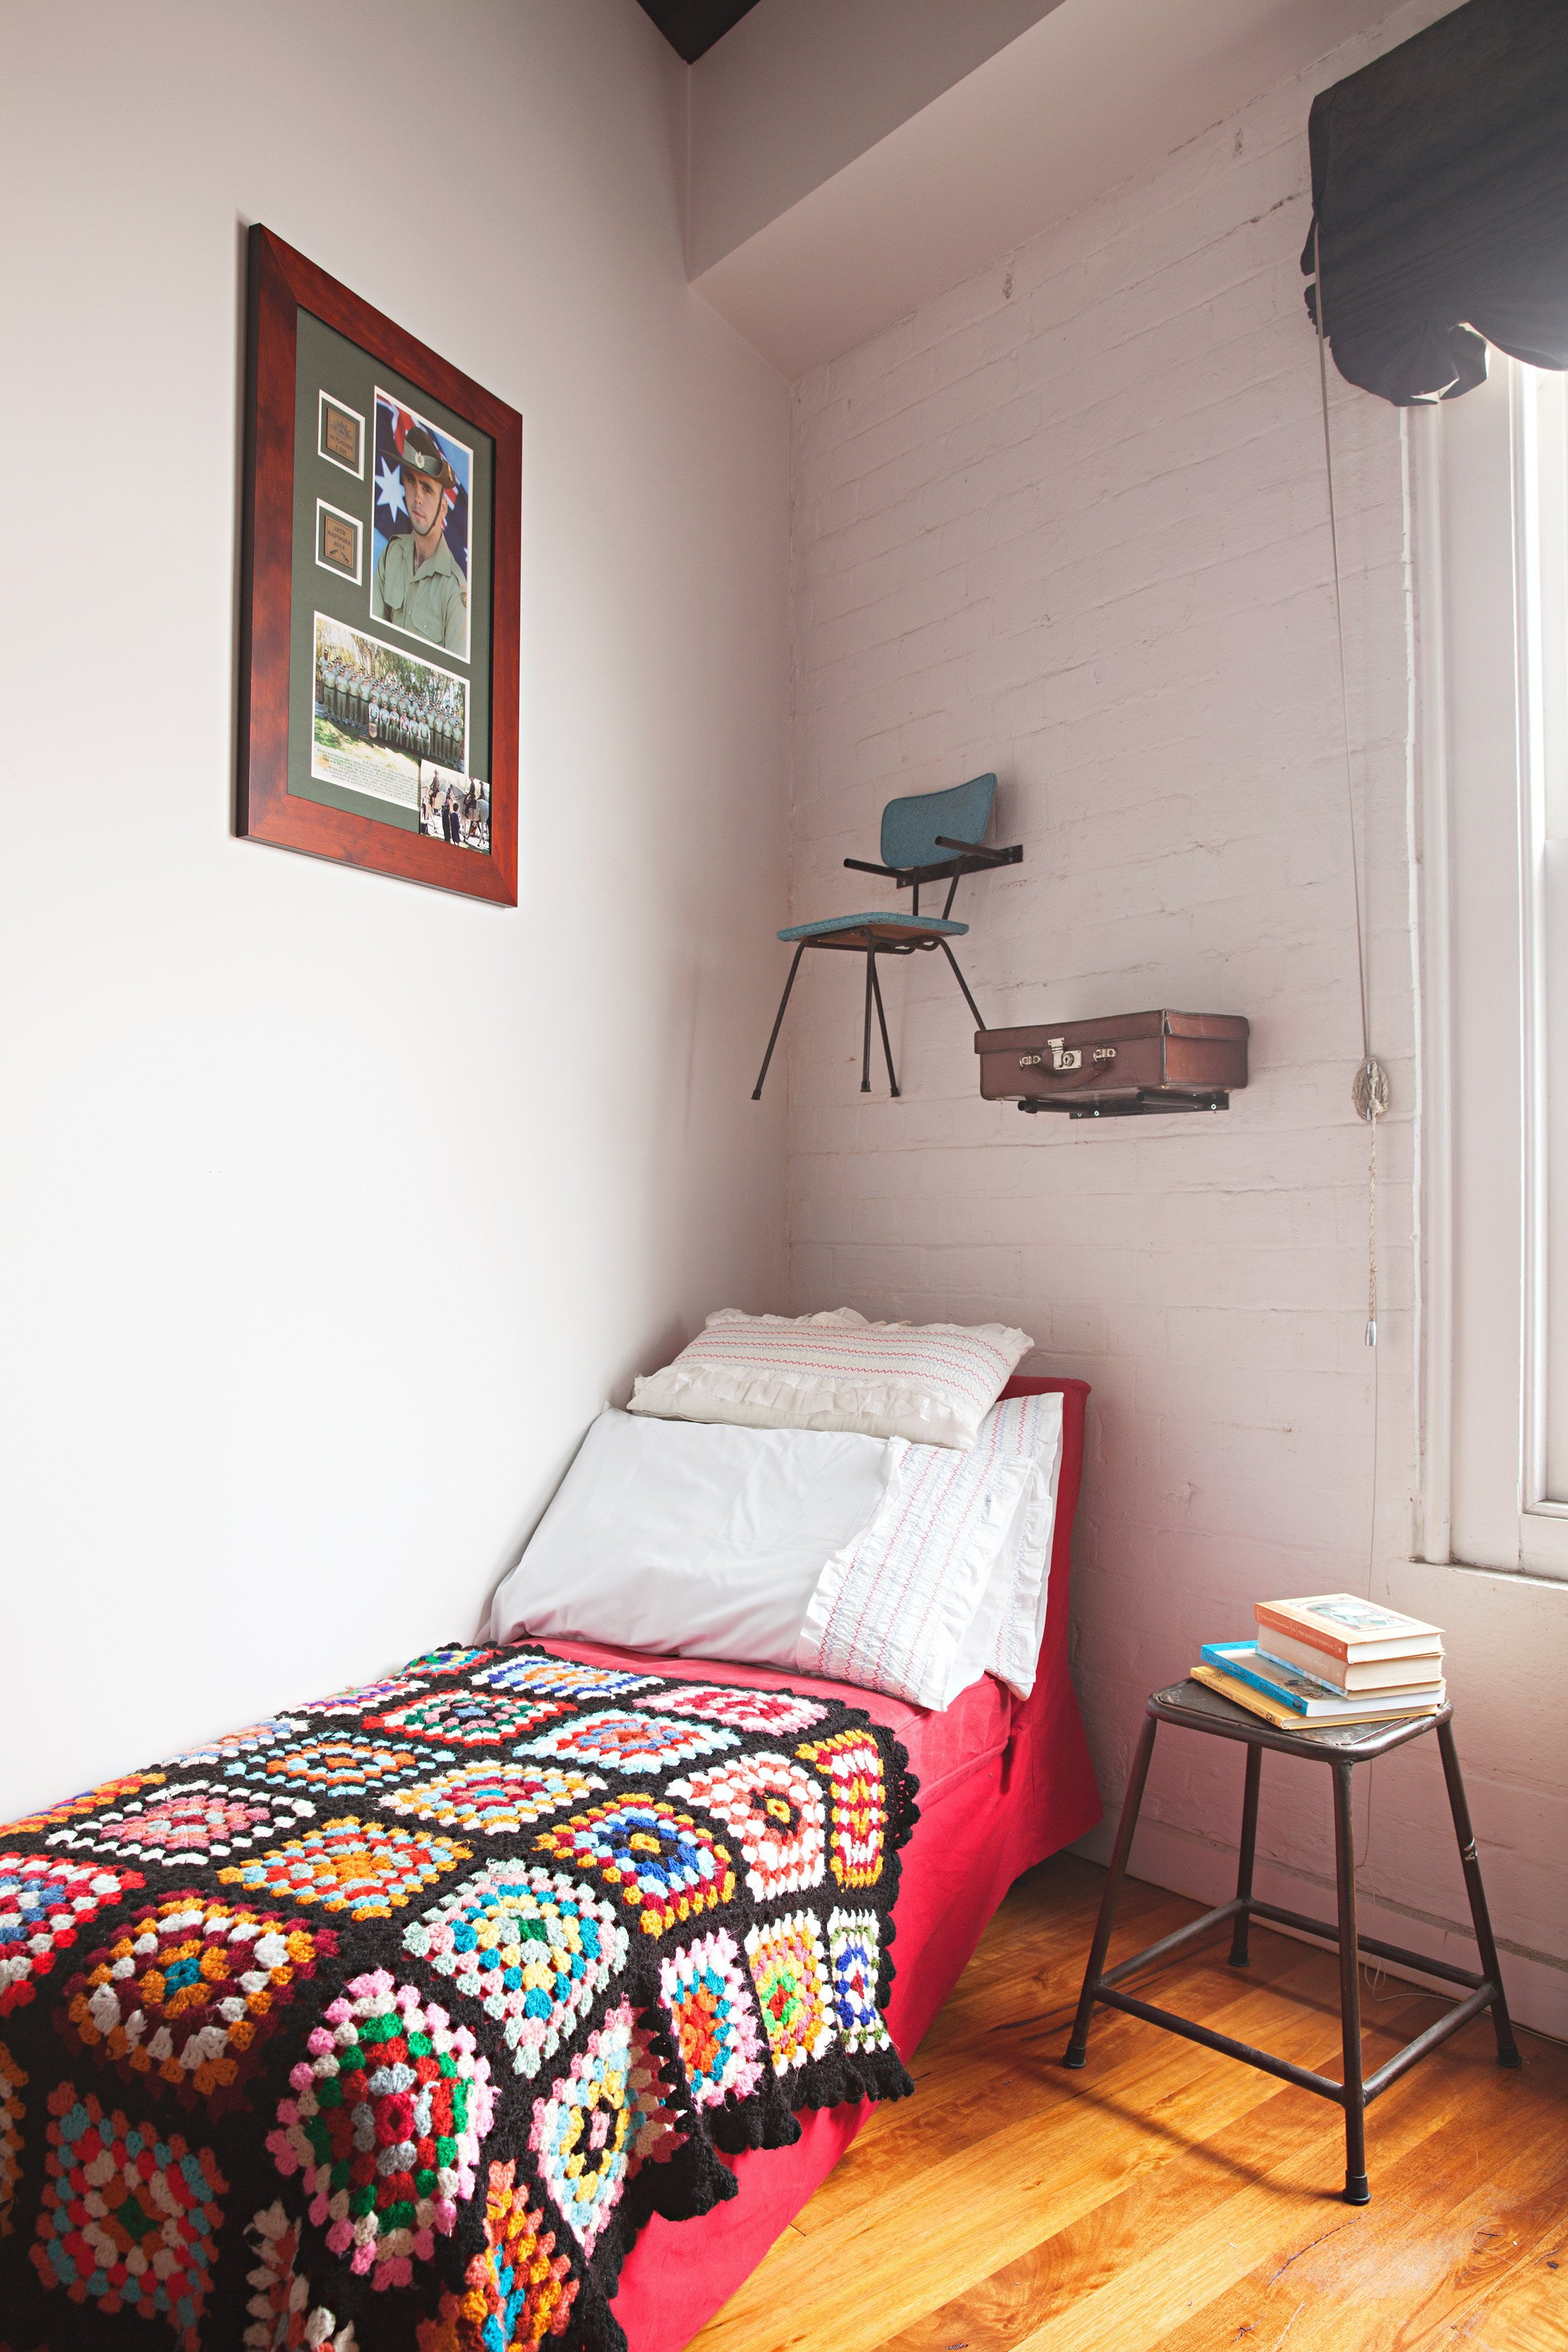 Space Saving Bedroom Ideas Fresh Small Space solutions 11 Space Saving Nightstand Ideas